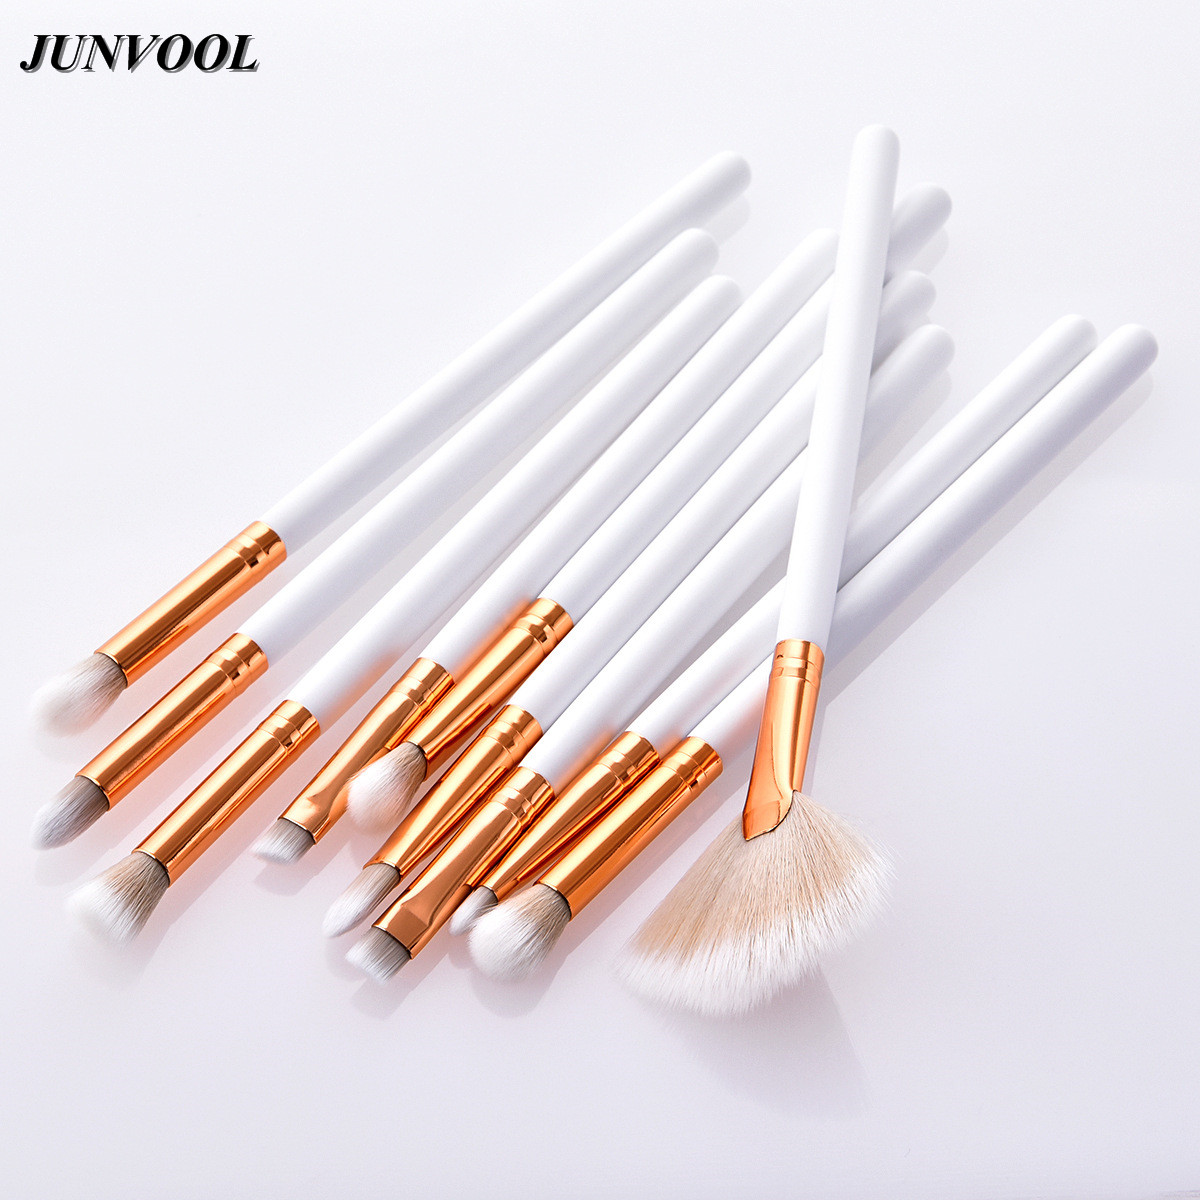 Eyeshadow Makeup Brushes Set 10Pcs White Gold Eyebrow Eyeliner Blush Contour Foundation Lip Cosmetic Beauty Make Up Fan Brush new store free shipping beauty and the beast rose gold makeup brush cosmetic brush woman gift eyeshadow contour concealer